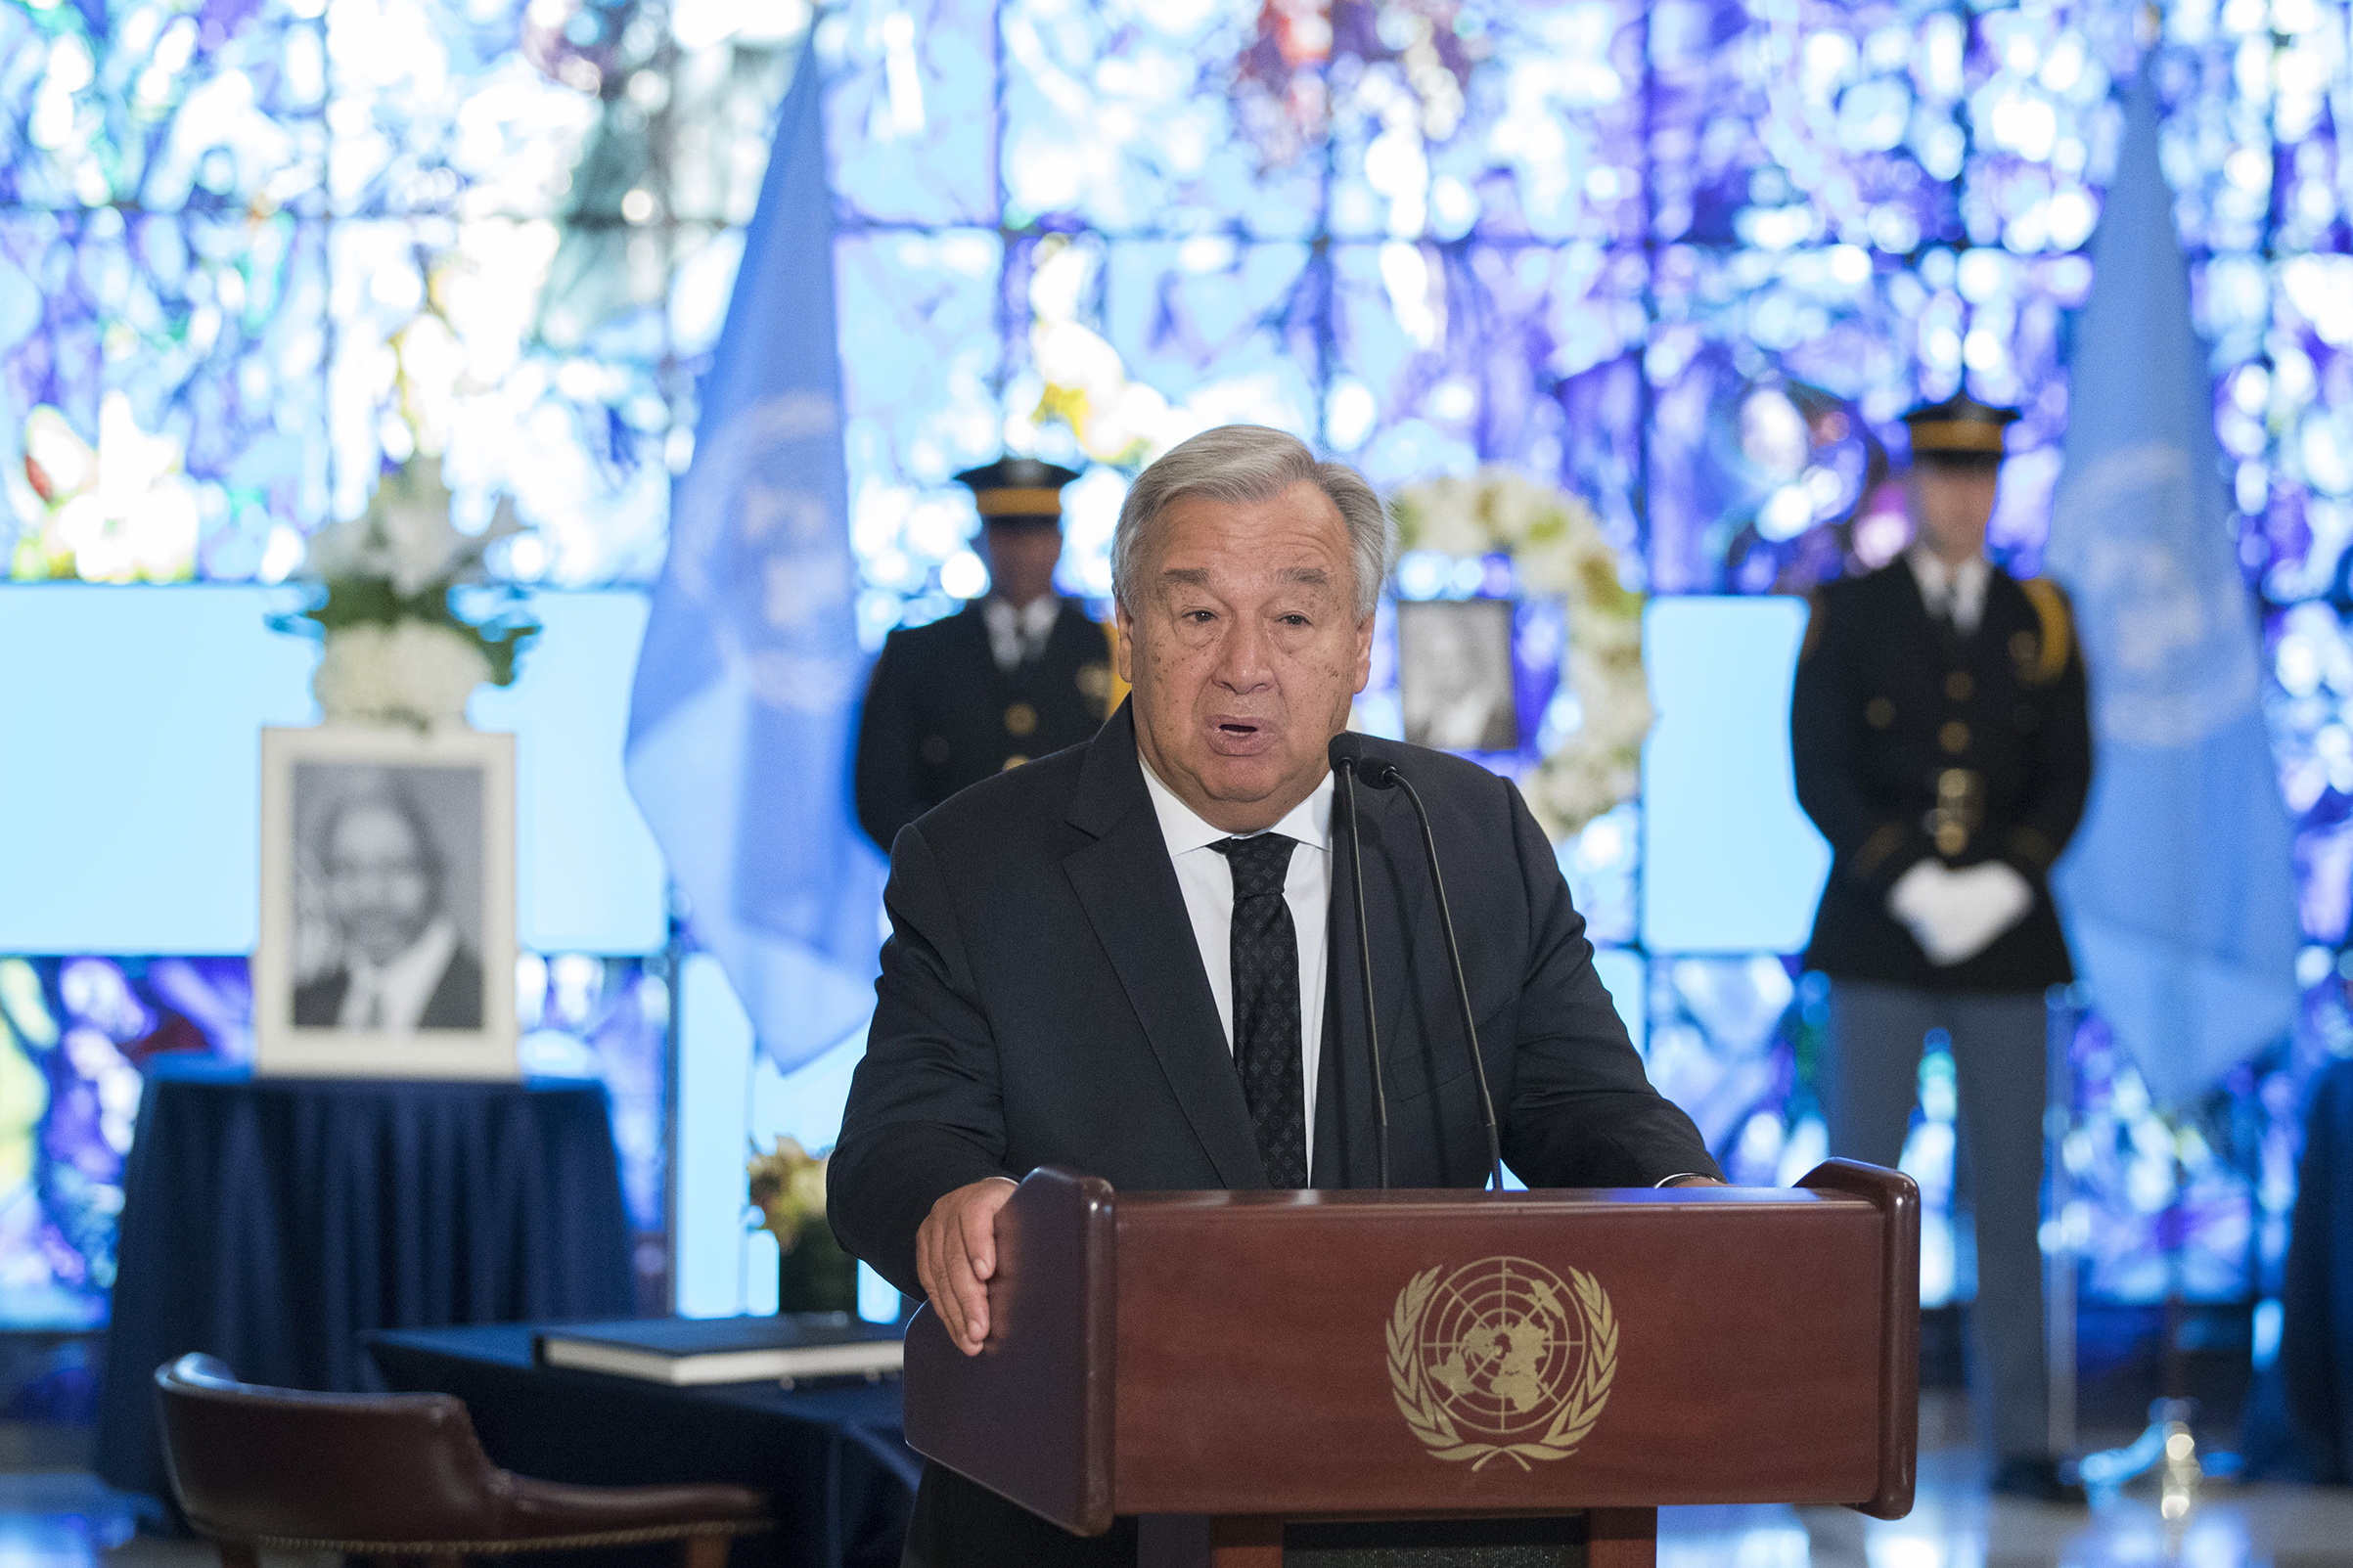 United Nations Secretary-General Antonio Guterres delivers his remarks after signing a book of condolences in memory of the late former Secretary-General Kofi Annan, on Aug 22, 2018 at the UN headquarters in New York.